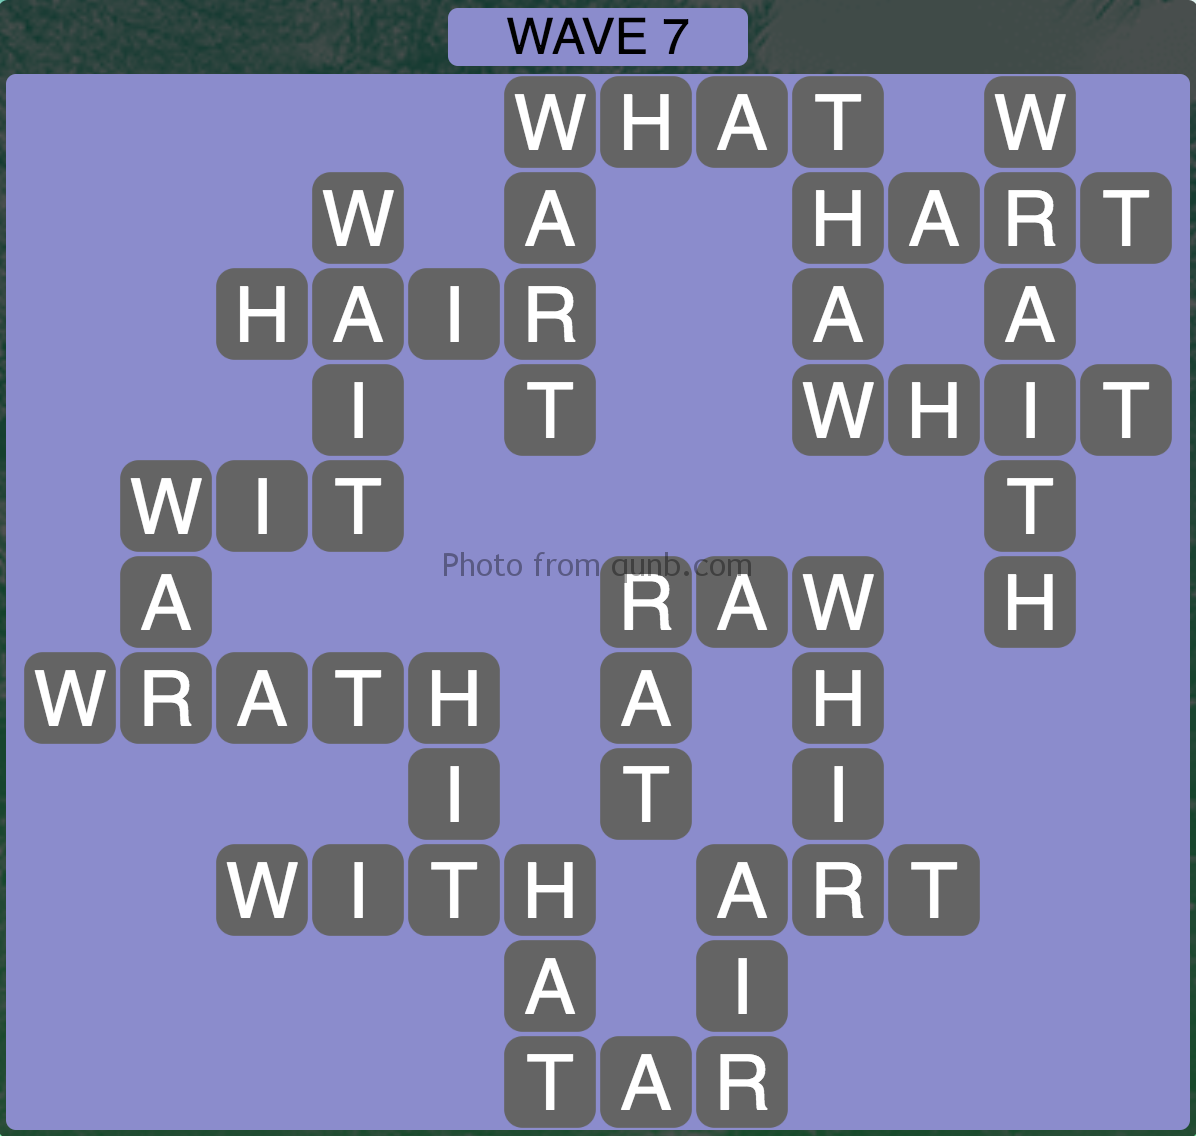 Wordscapes Wave 7 (Level 823) Answers